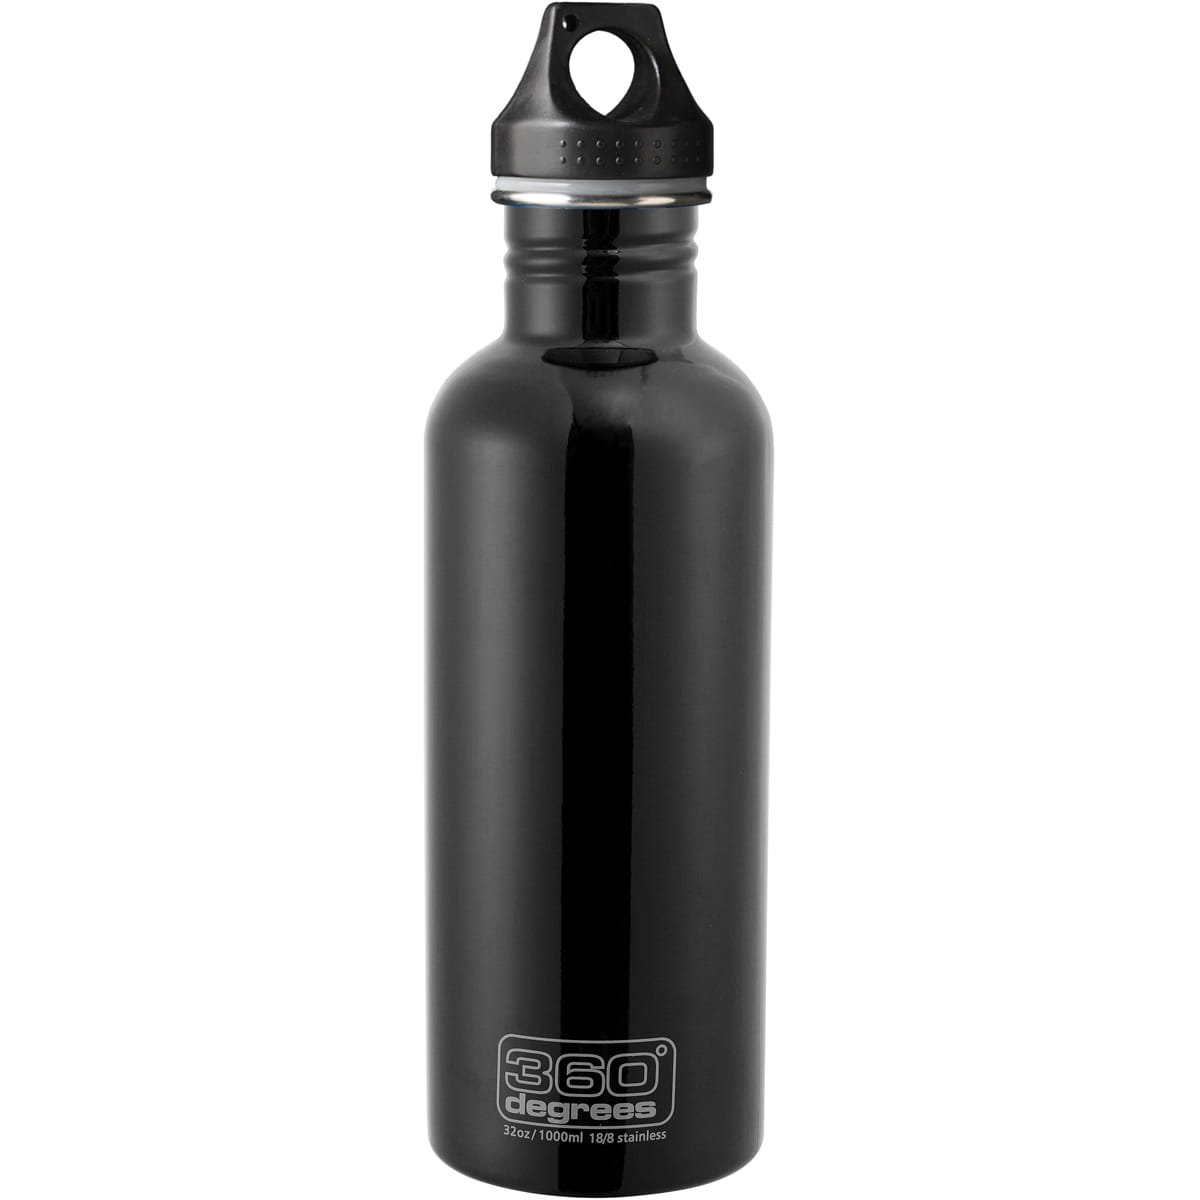 360° degrees Stainless Drink Bottle - 1000 ml - Trinkflasche günstig ...